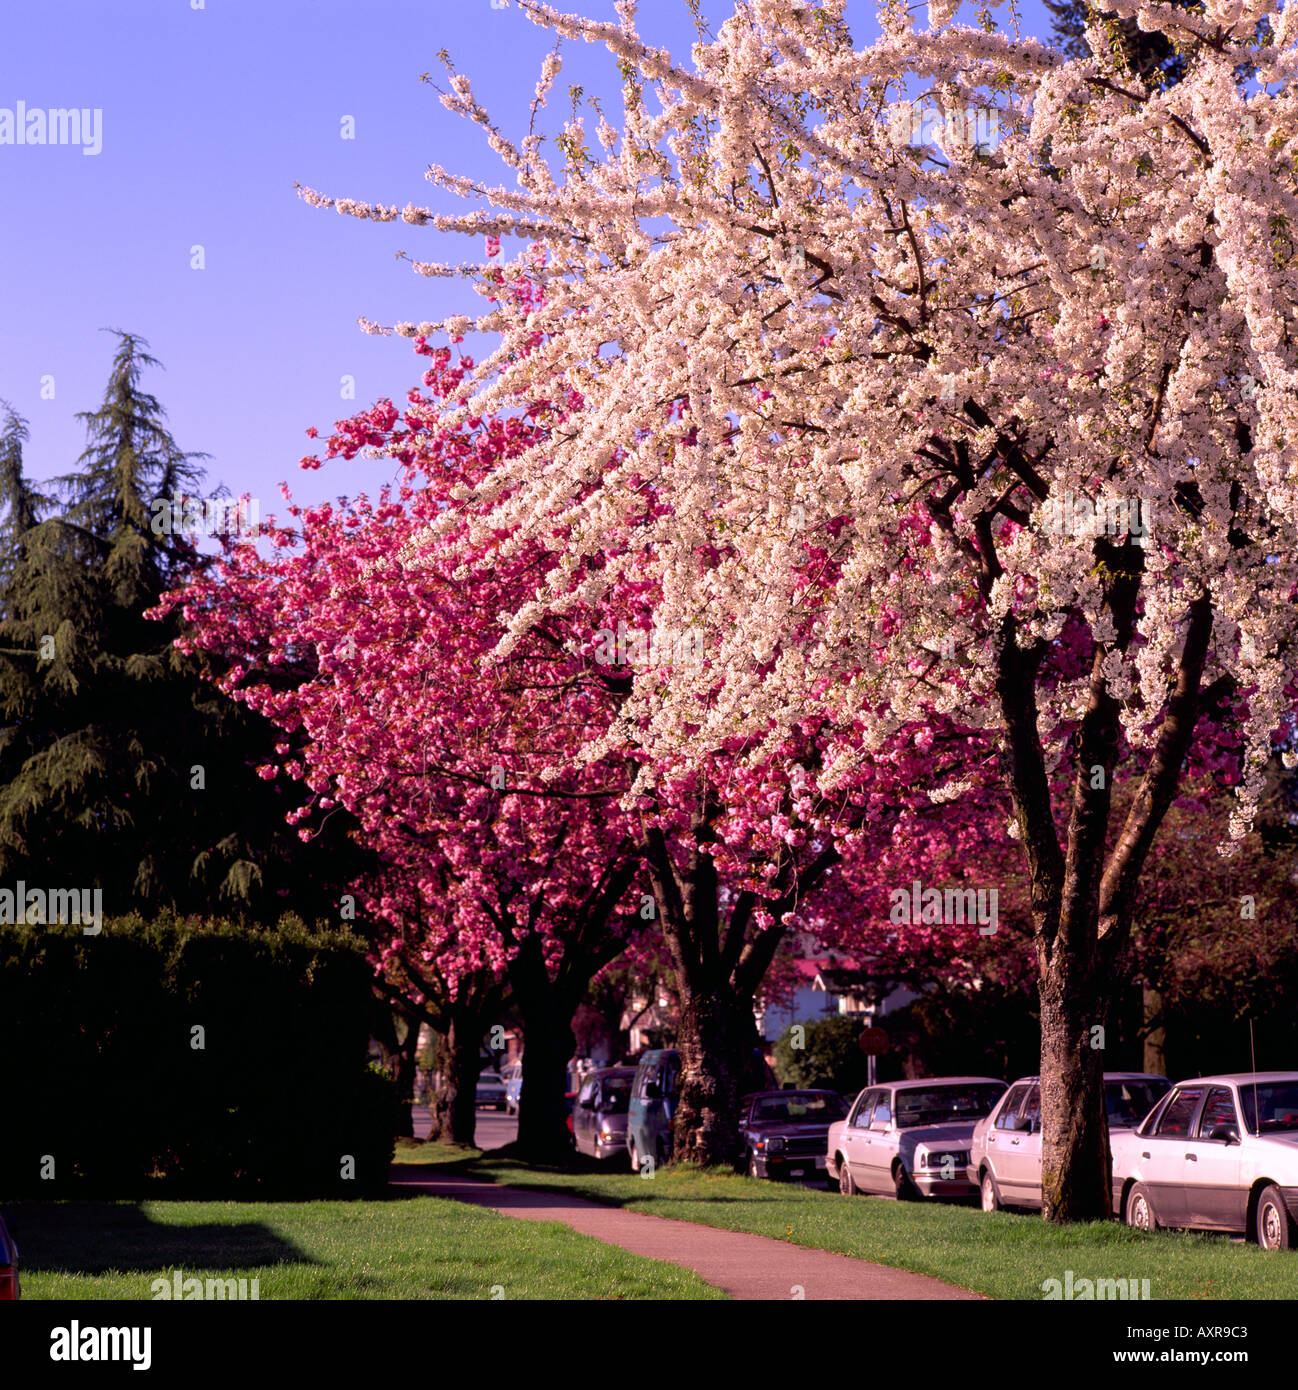 Japanese Cherry Trees In Blossom Blooming In Spring Vancouver Bc British Columbia Canada Stock Photo Alamy